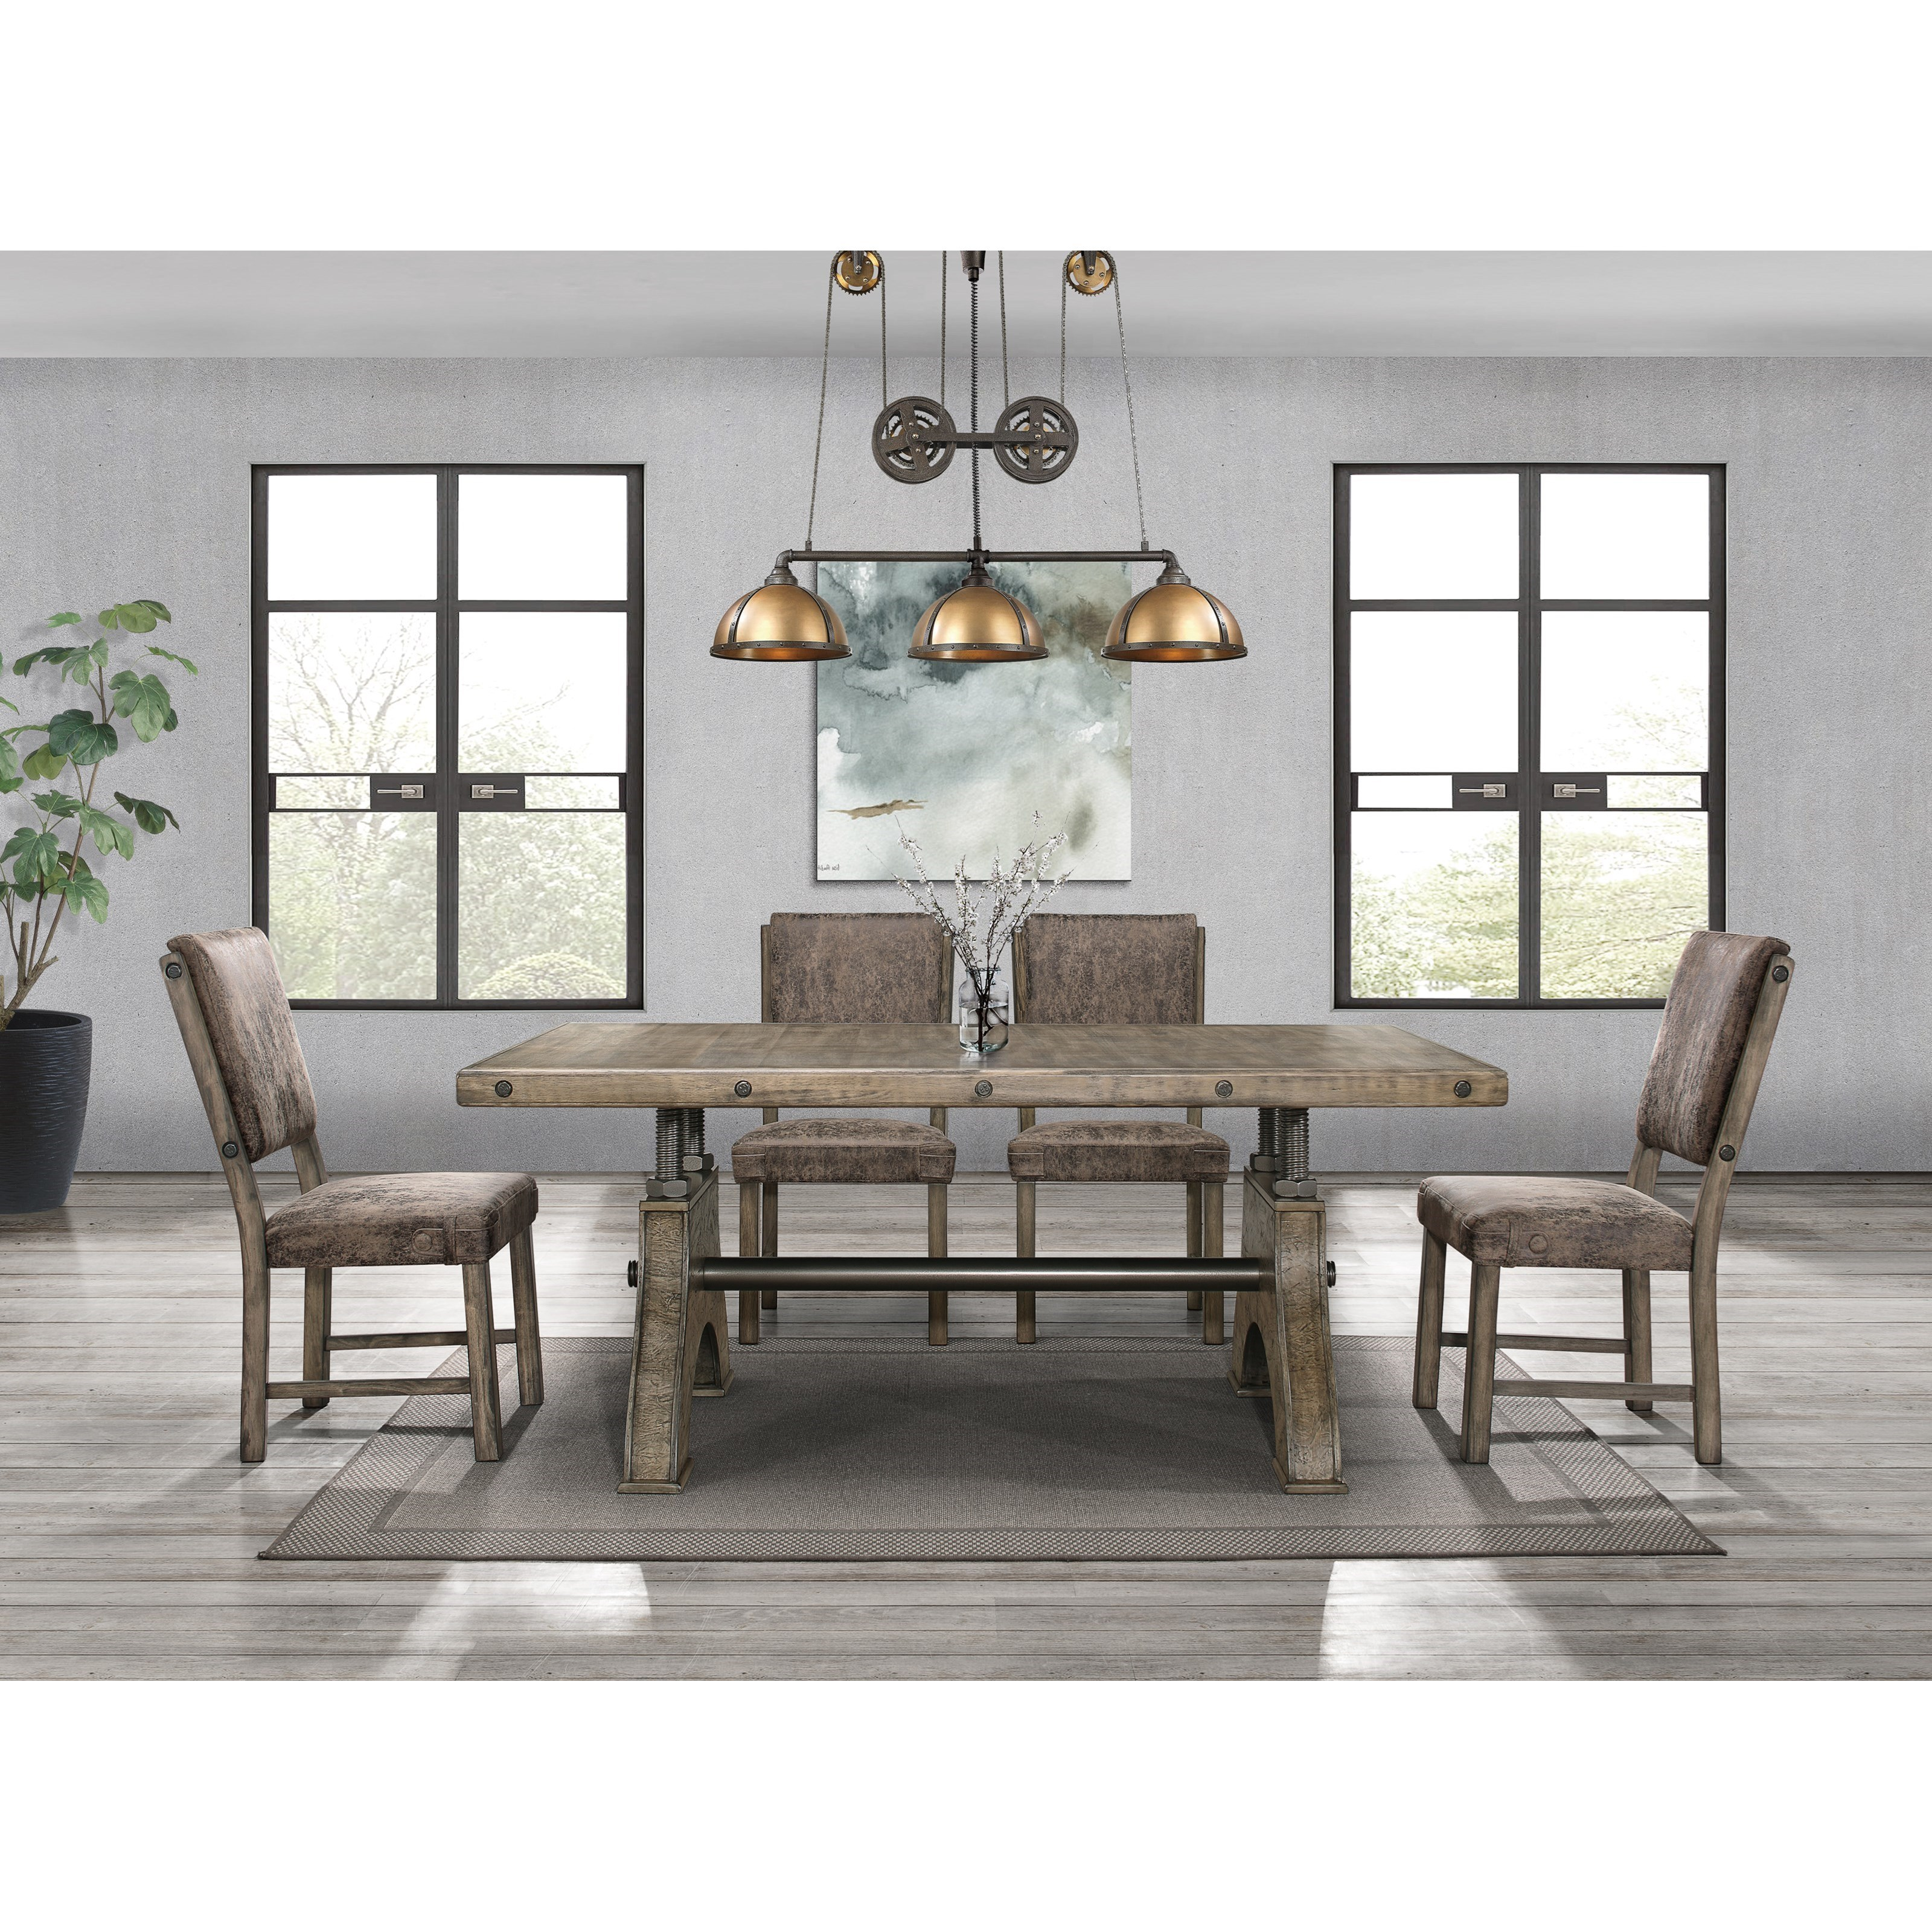 D855 5 Piece Table and Chair Set by Global Furniture at Corner Furniture